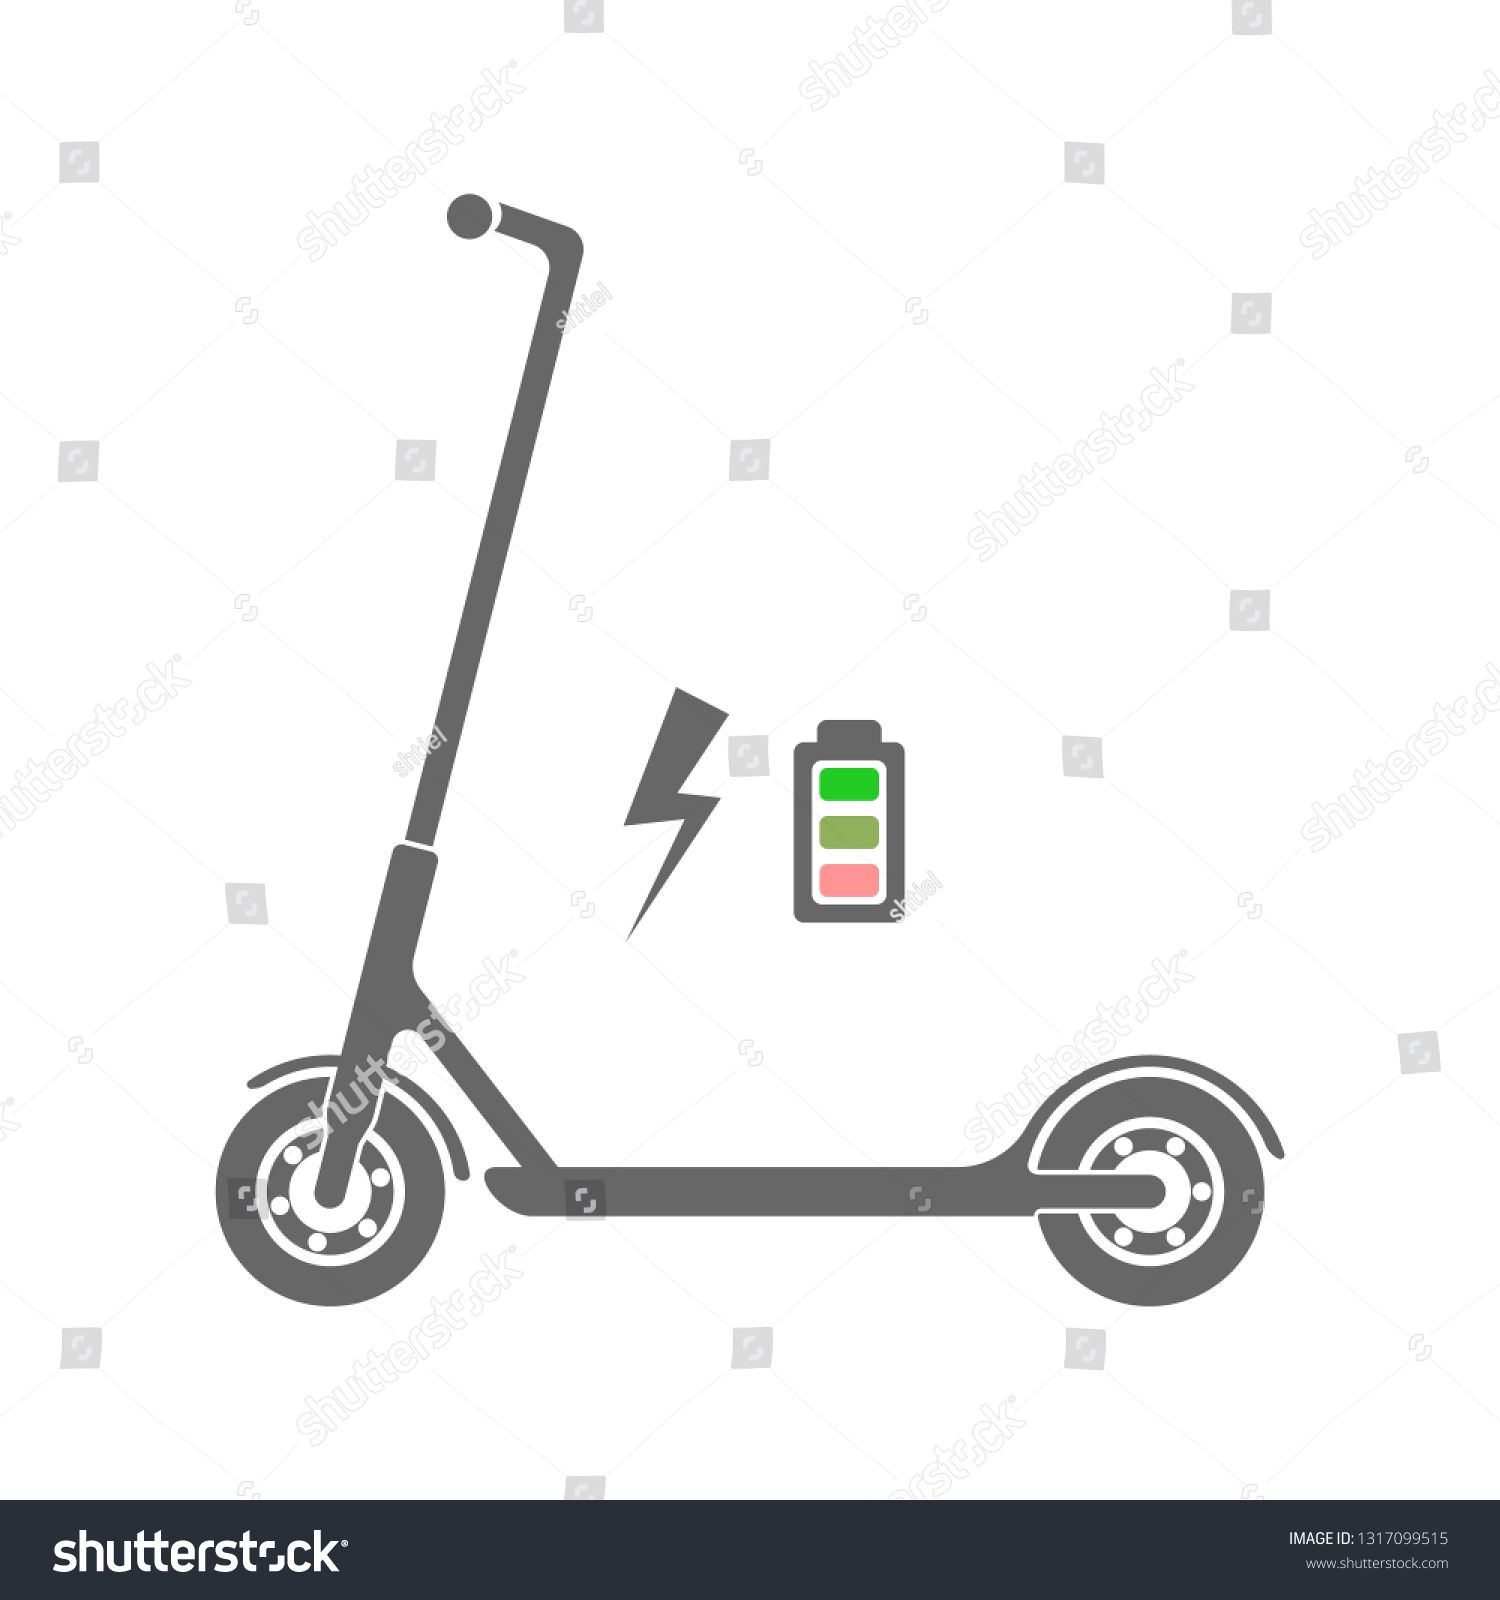 electric scooter icon illustration vector ad spon scooter electric icon vector icon illustration graphic illustration illustration electric scooter icon illustration